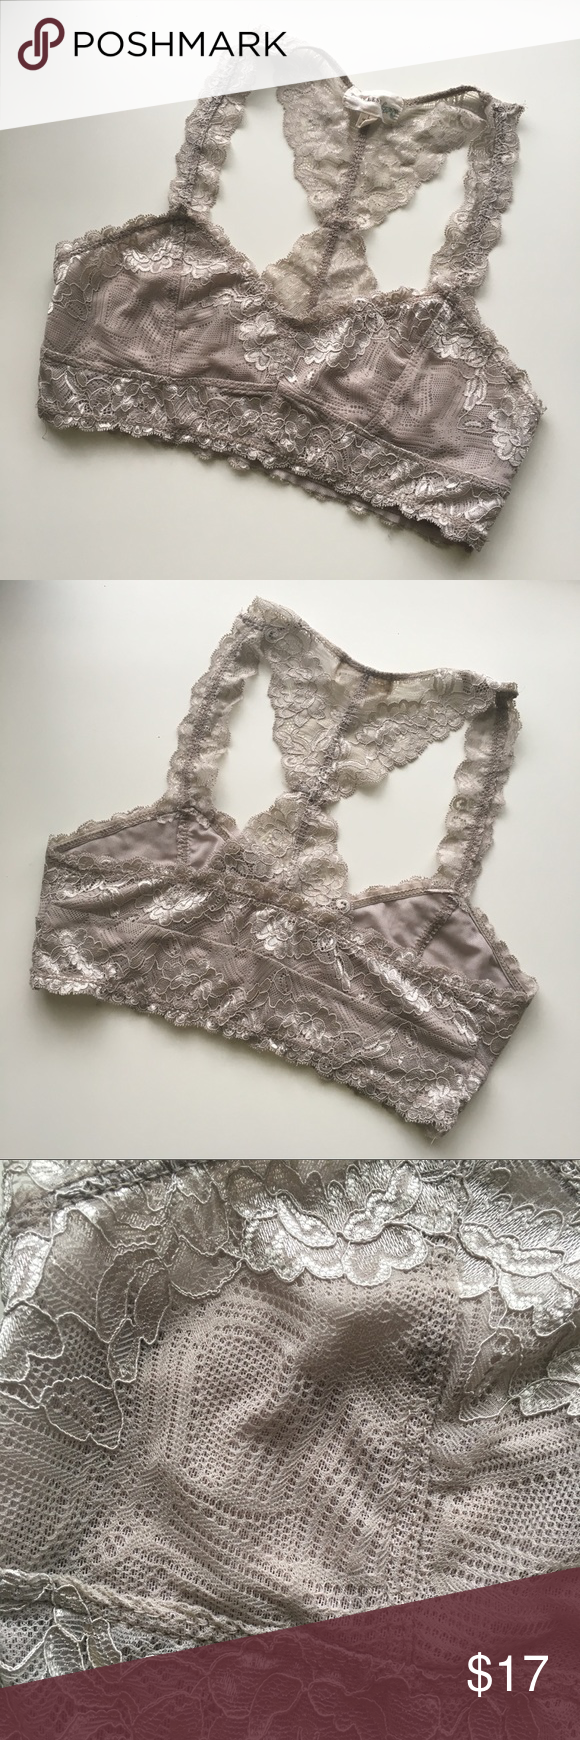 ee07bc6cac40d7 Taupe Lace Bralette Super cute to wear under tanks! No padding. Color as  shown in photo 3. Worn once over a bra. Washed in cold water, line dried  flawless ...